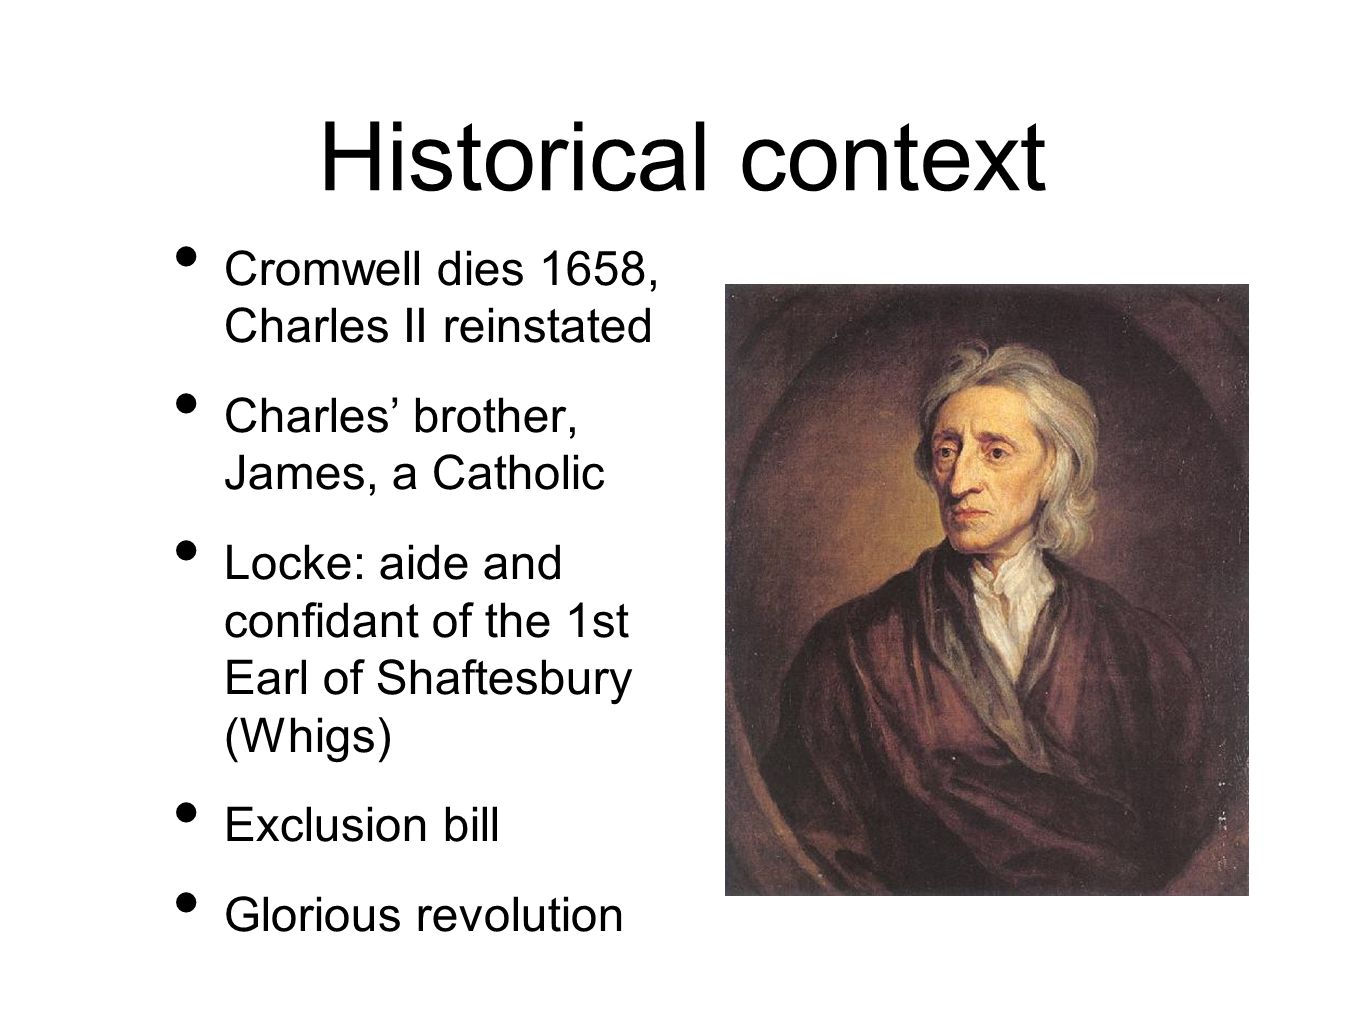 Historical context Cromwell dies 1658, Charles II reinstated Charles brother, James, a Catholic Locke: aide and confidant of the 1st Earl of Shaftesbury (Whigs) Exclusion bill Glorious revolution